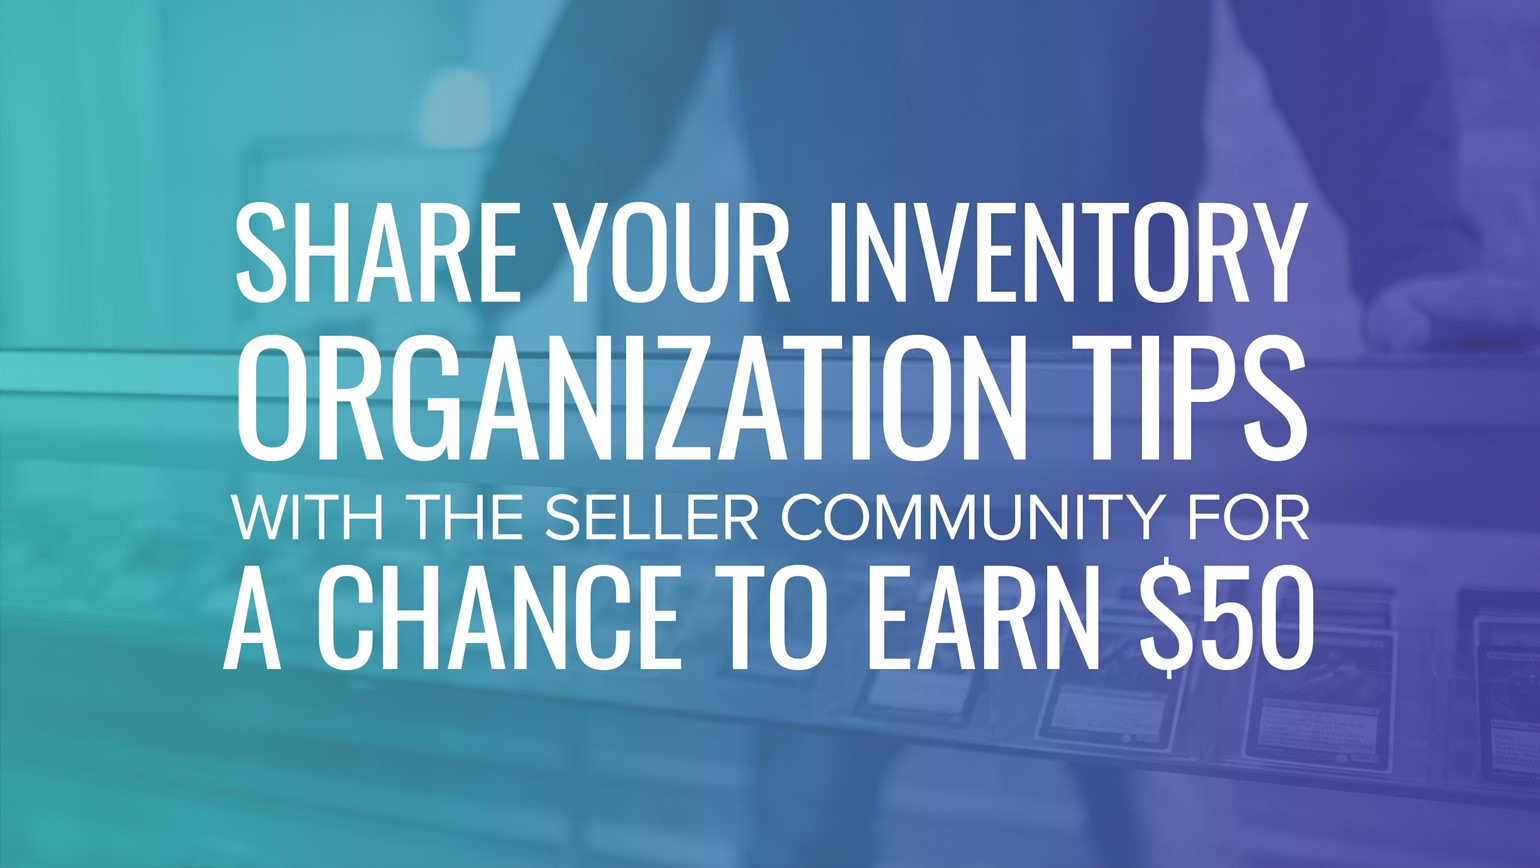 Share Your Inventory Organization Tips with the Seller Community for a Chance to Earn $50